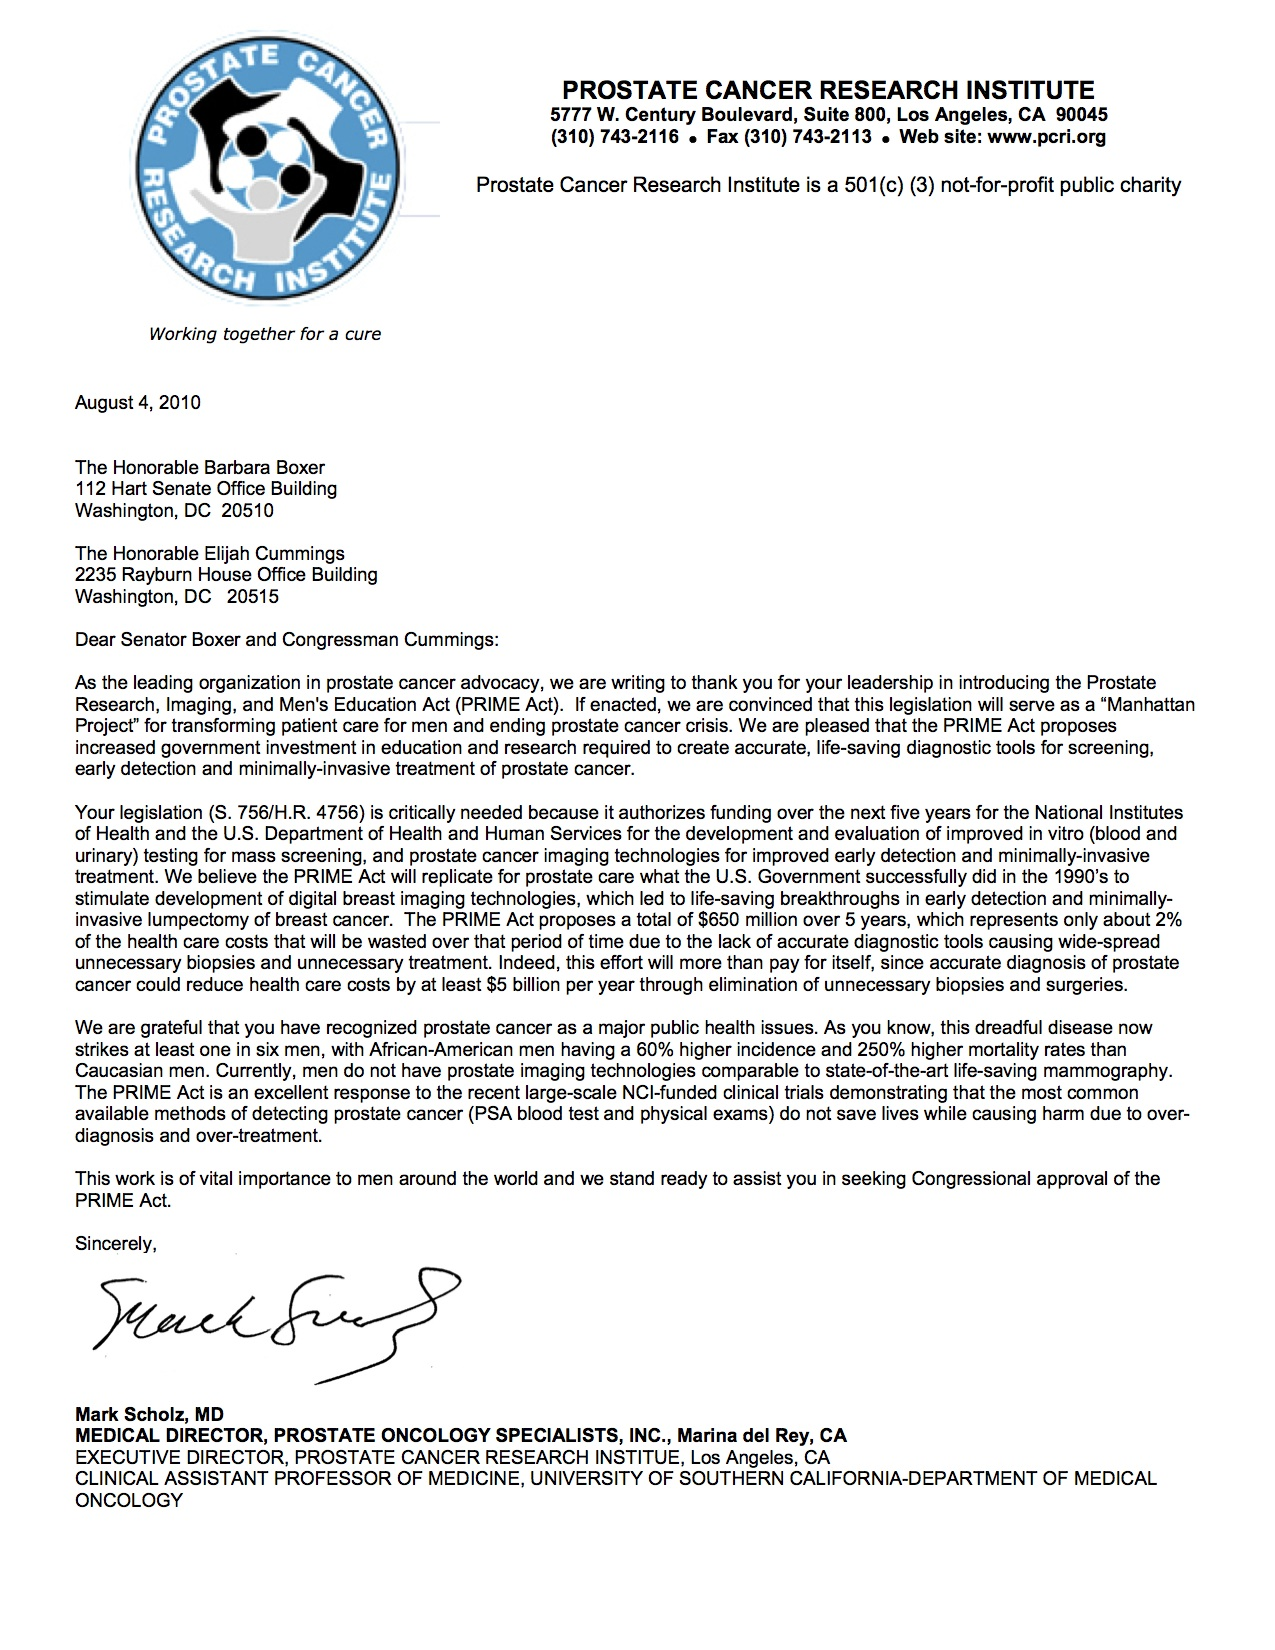 Advocacy supports prime act admetech for Advocacy letter template